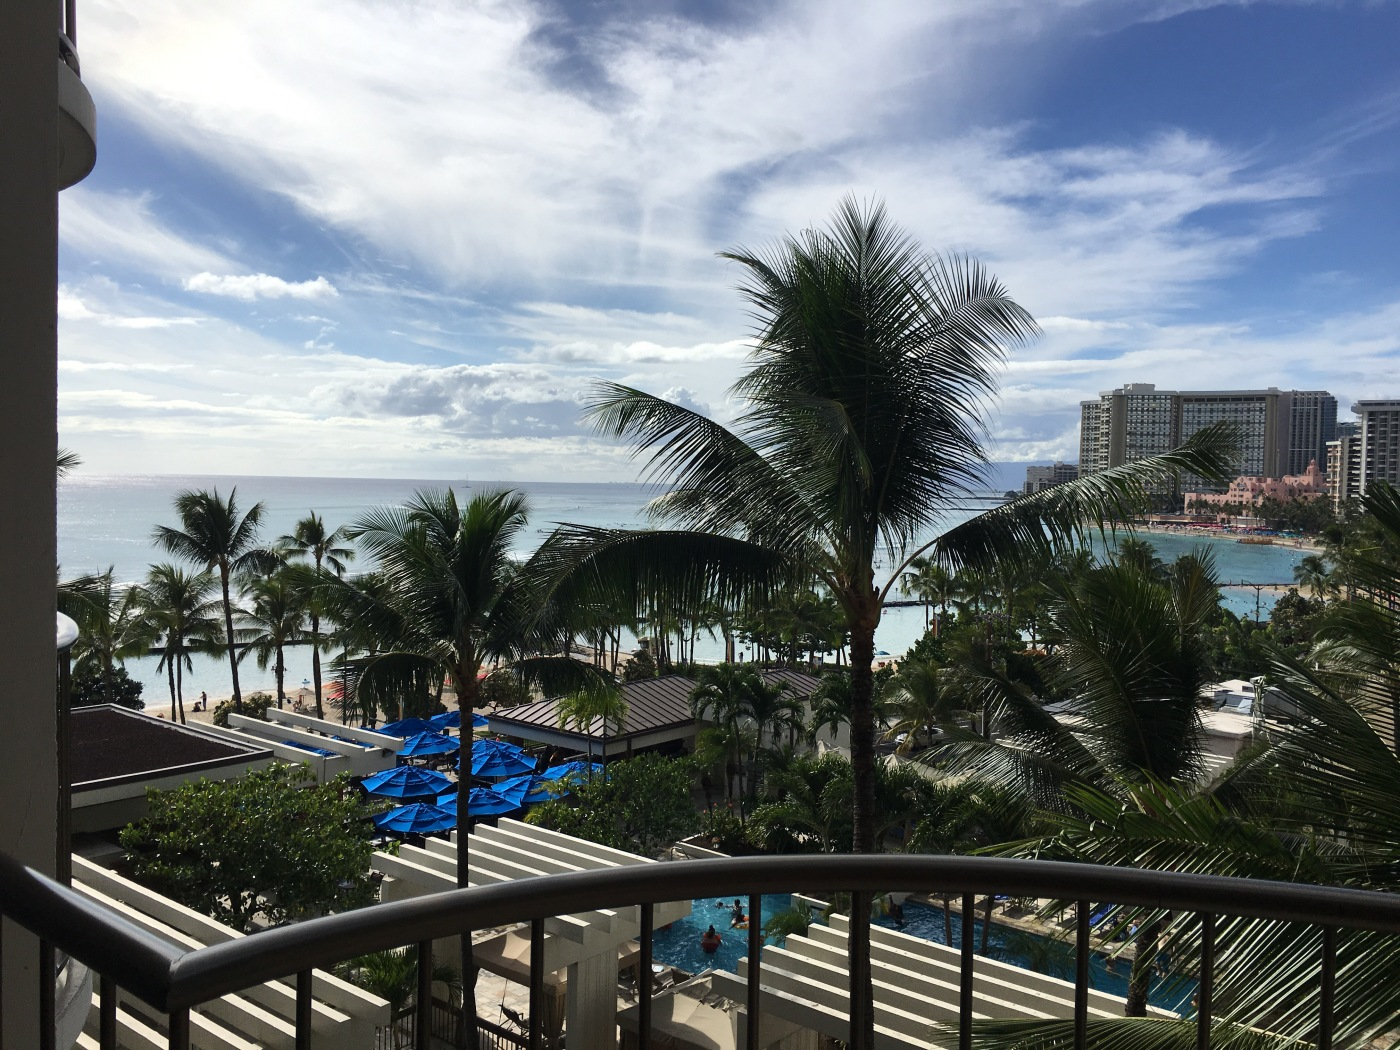 Oceanview room, Marriott Resort and Spa, Waikiki Beach, Honolulu, Oahu, Hawaii